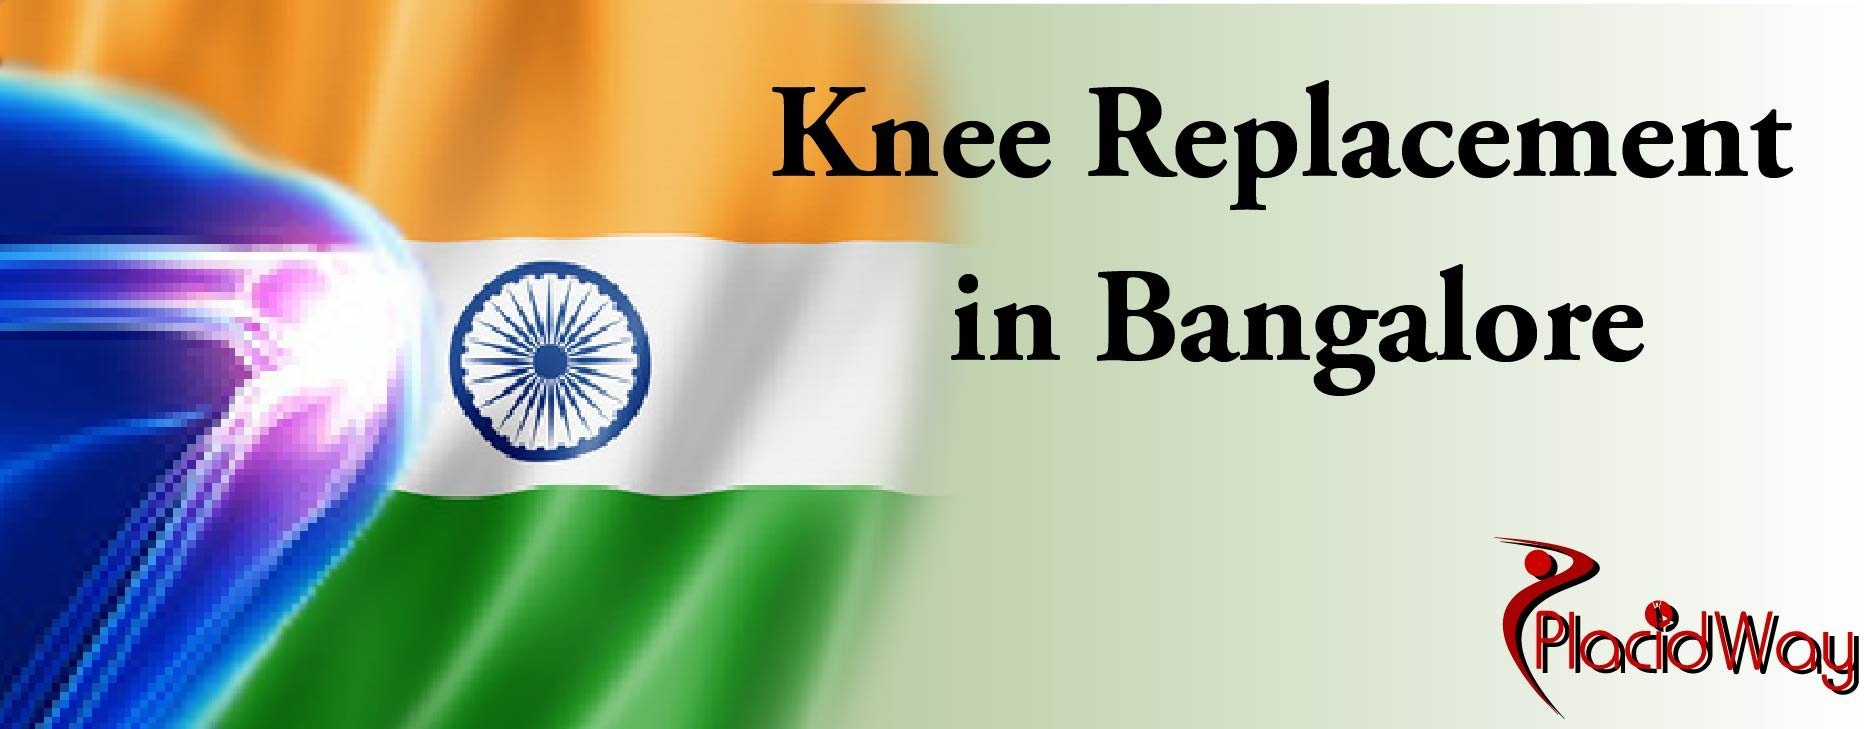 Knee Replacement in Bangalore, Orthopedic Treatment in India